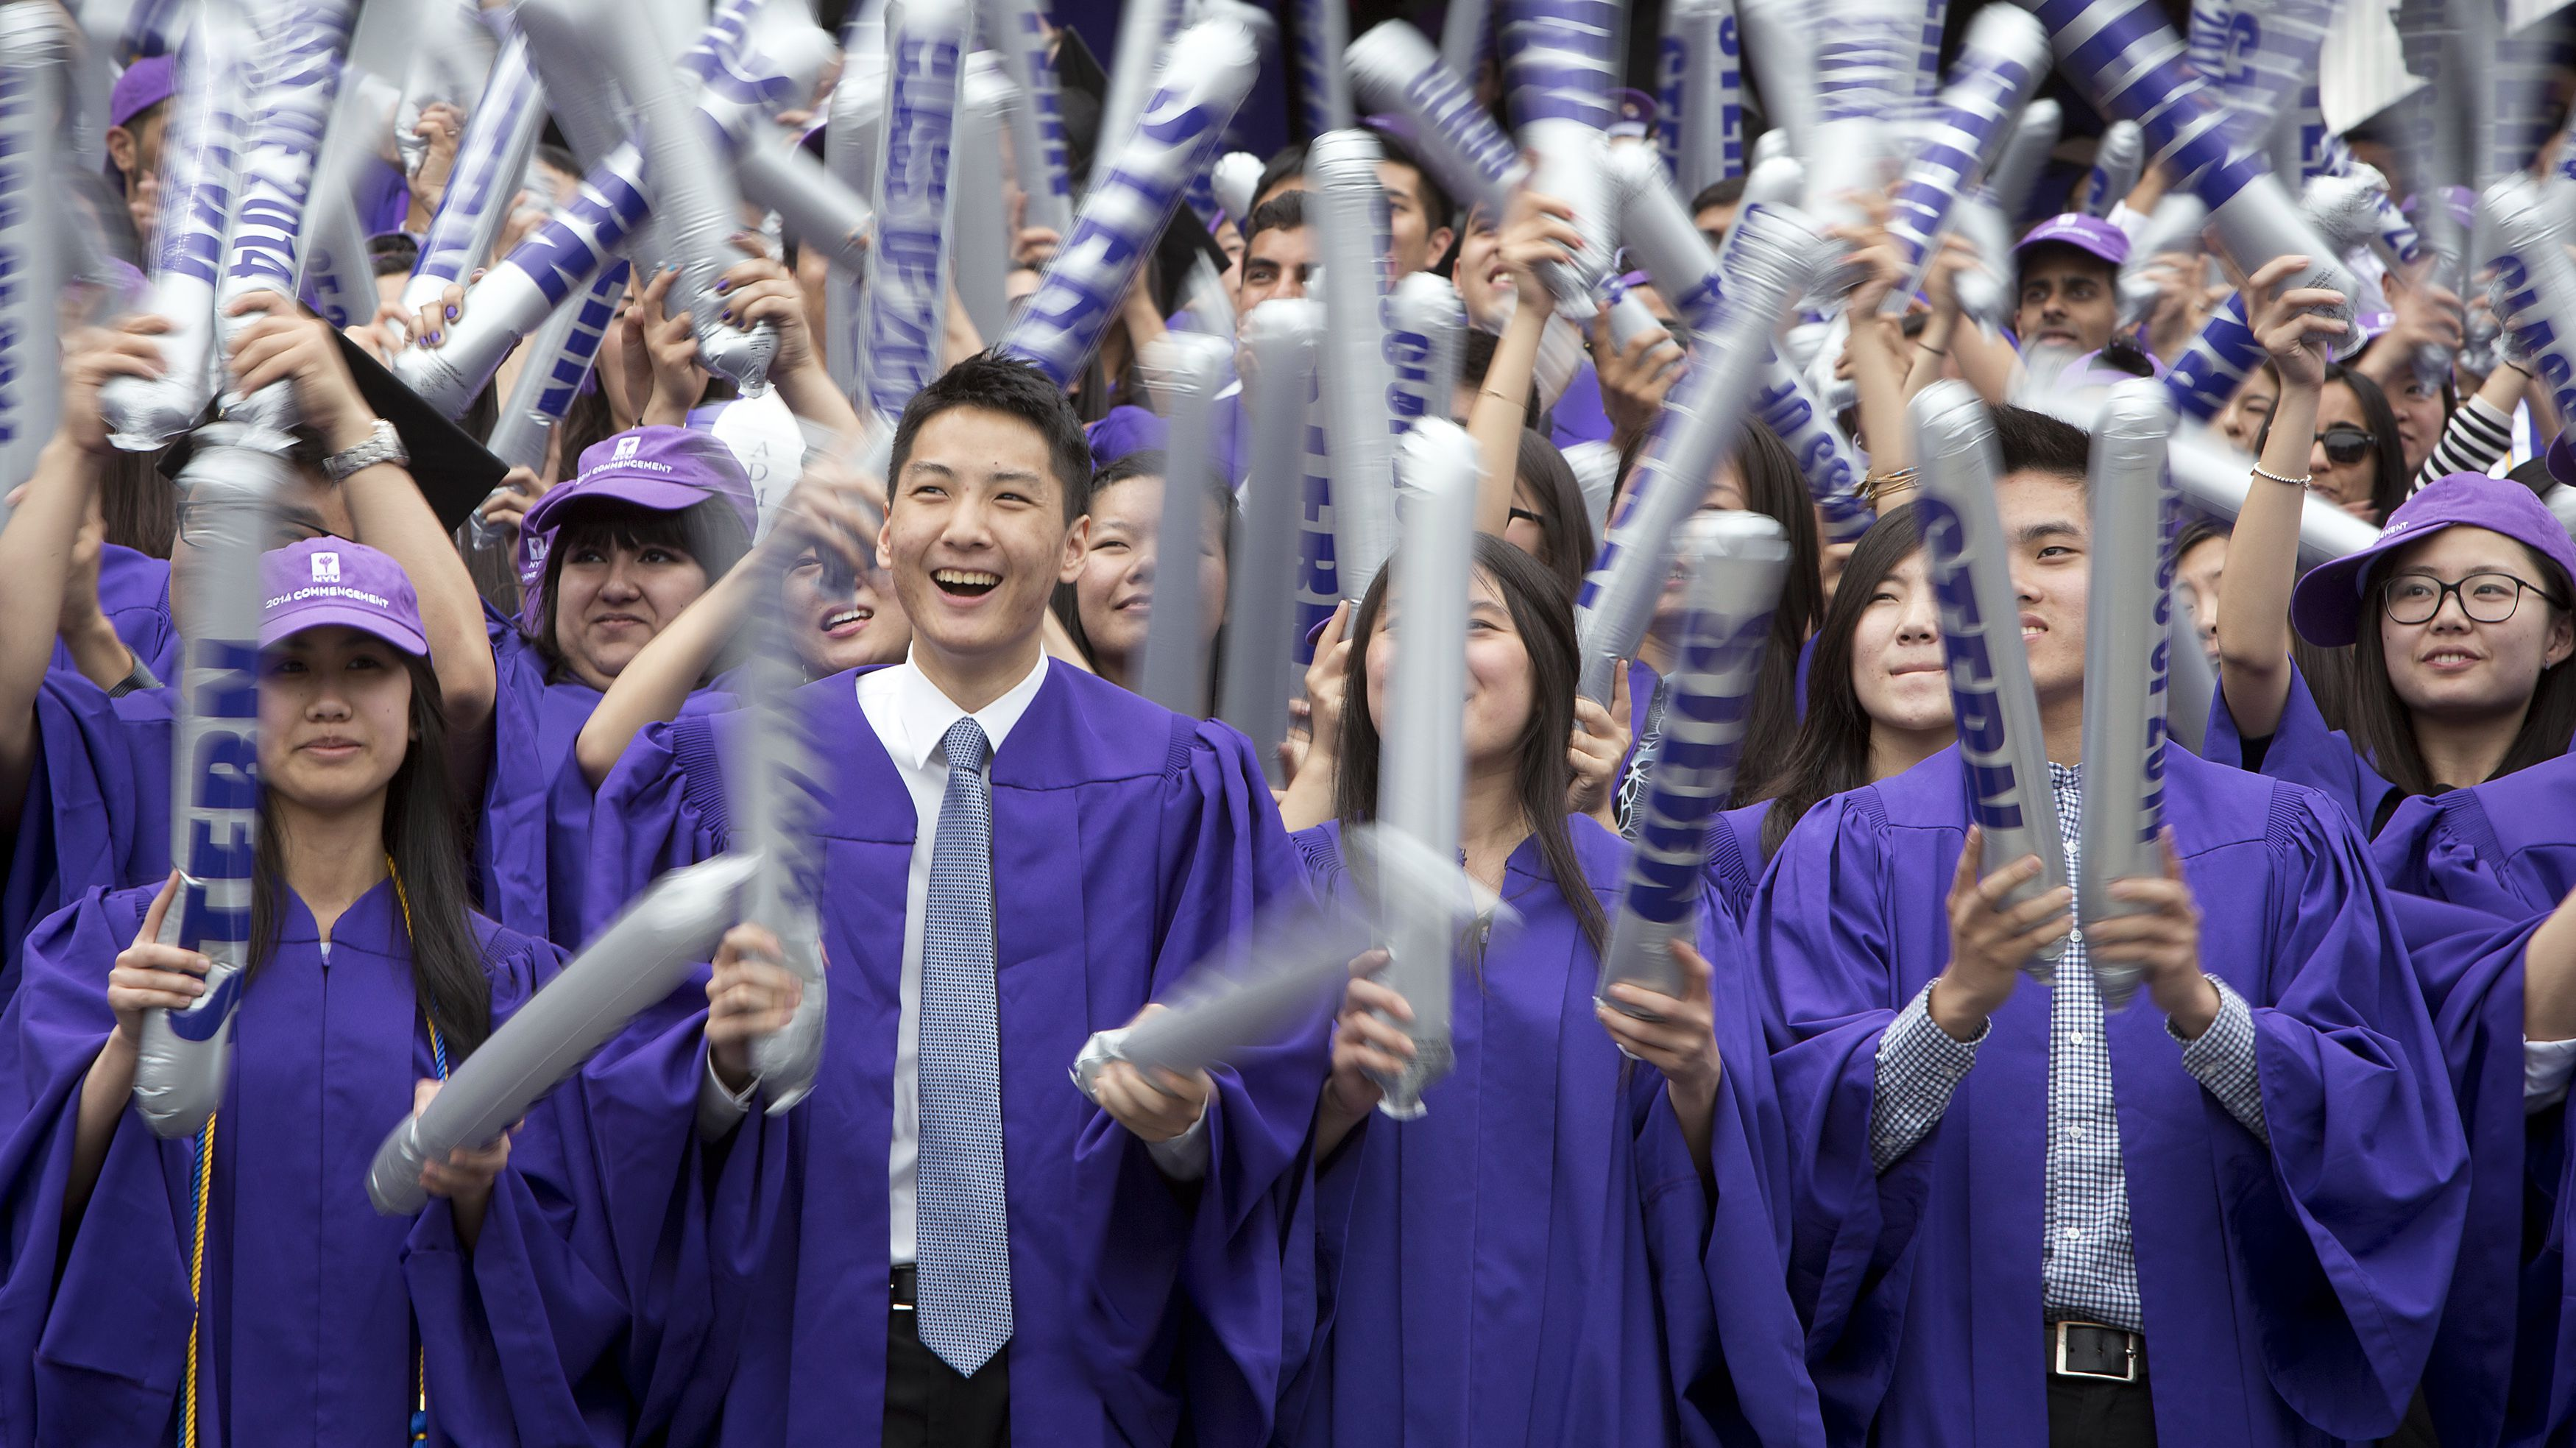 Graduates from New York University (NYU) cheer during the commencement ceremony at Yankee Stadium in the Bronx borough of New York May 21, 2014. Some 8000 NYU graduates received their degrees in the school's 182nd commencement ceremony.    REUTERS/Carlo Allegri (UNITED STATES - Tags: EDUCATION) - RTR3Q8B1